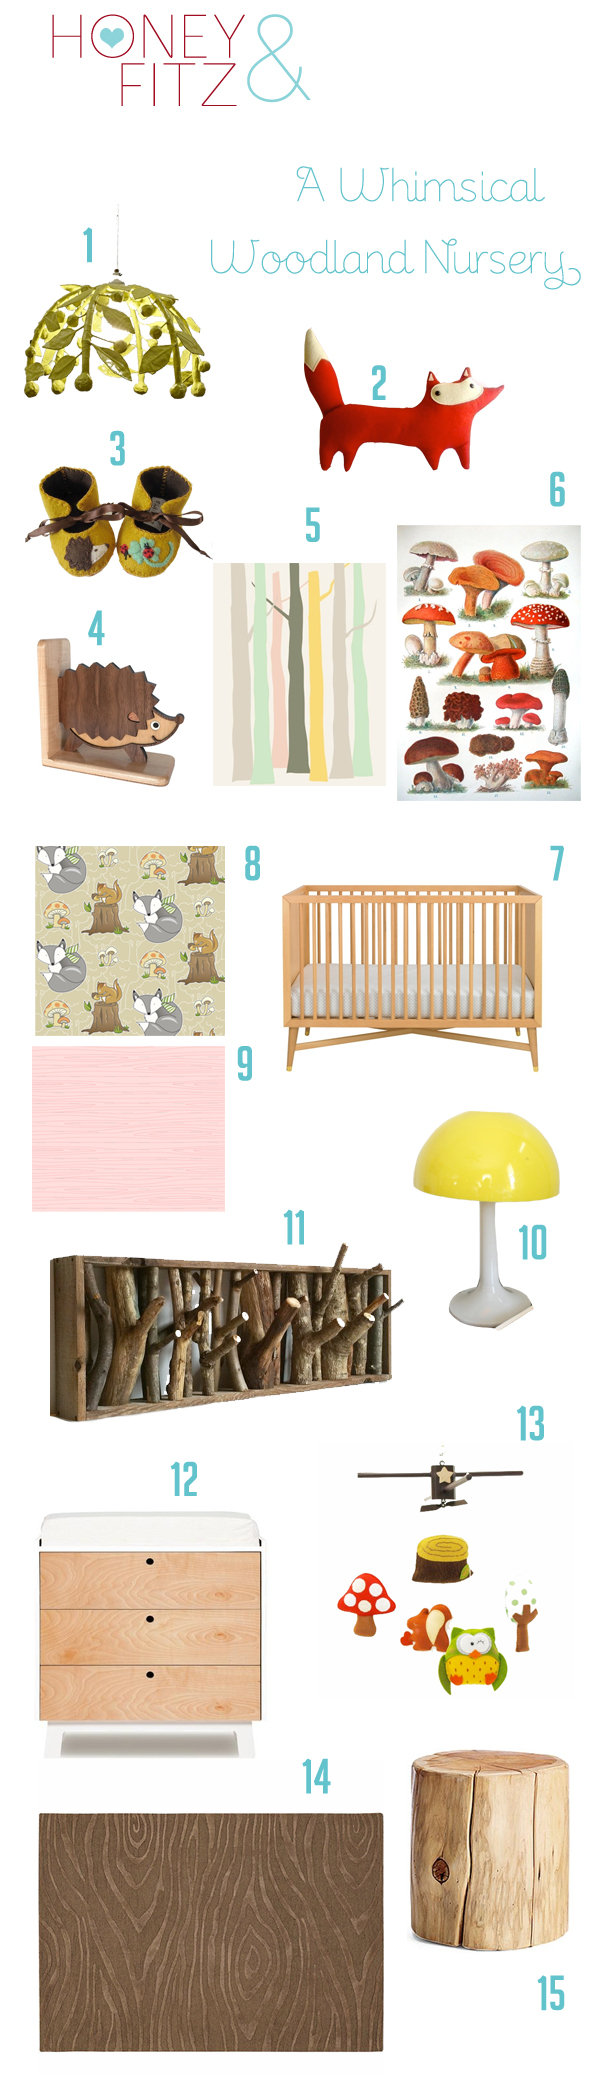 whimsical-woodland-nursery